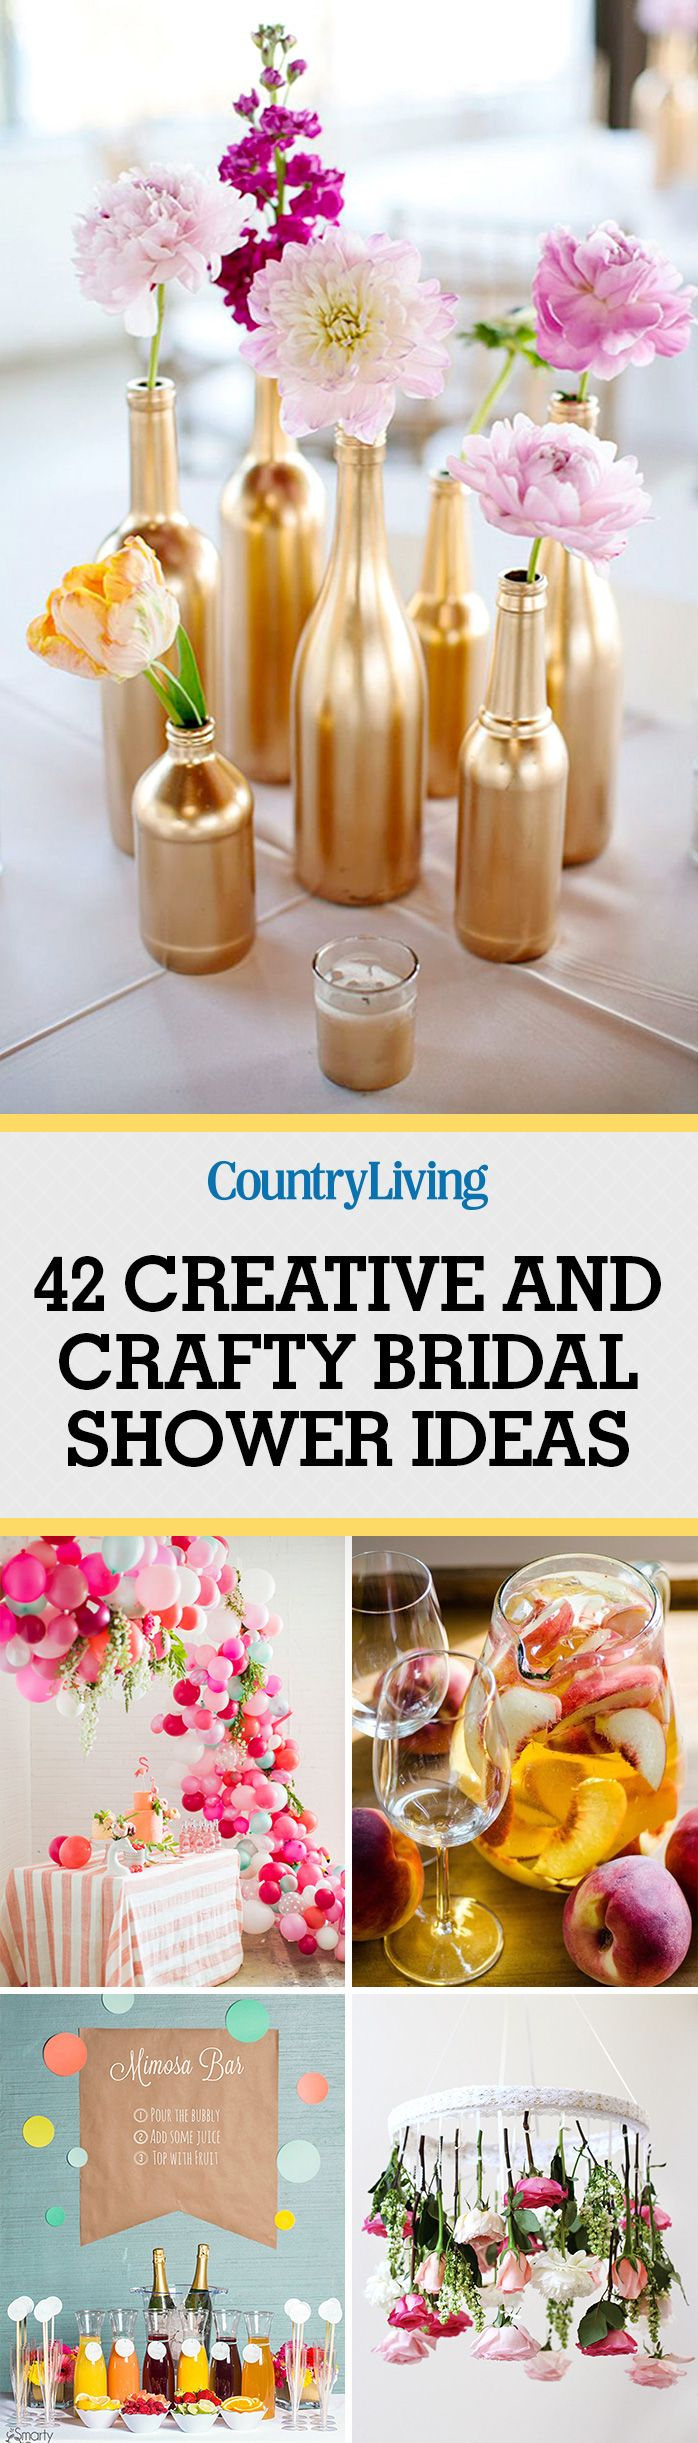 55 Best Bridal Shower Ideas Fun Themes Food And Decorating For Wedding Showers